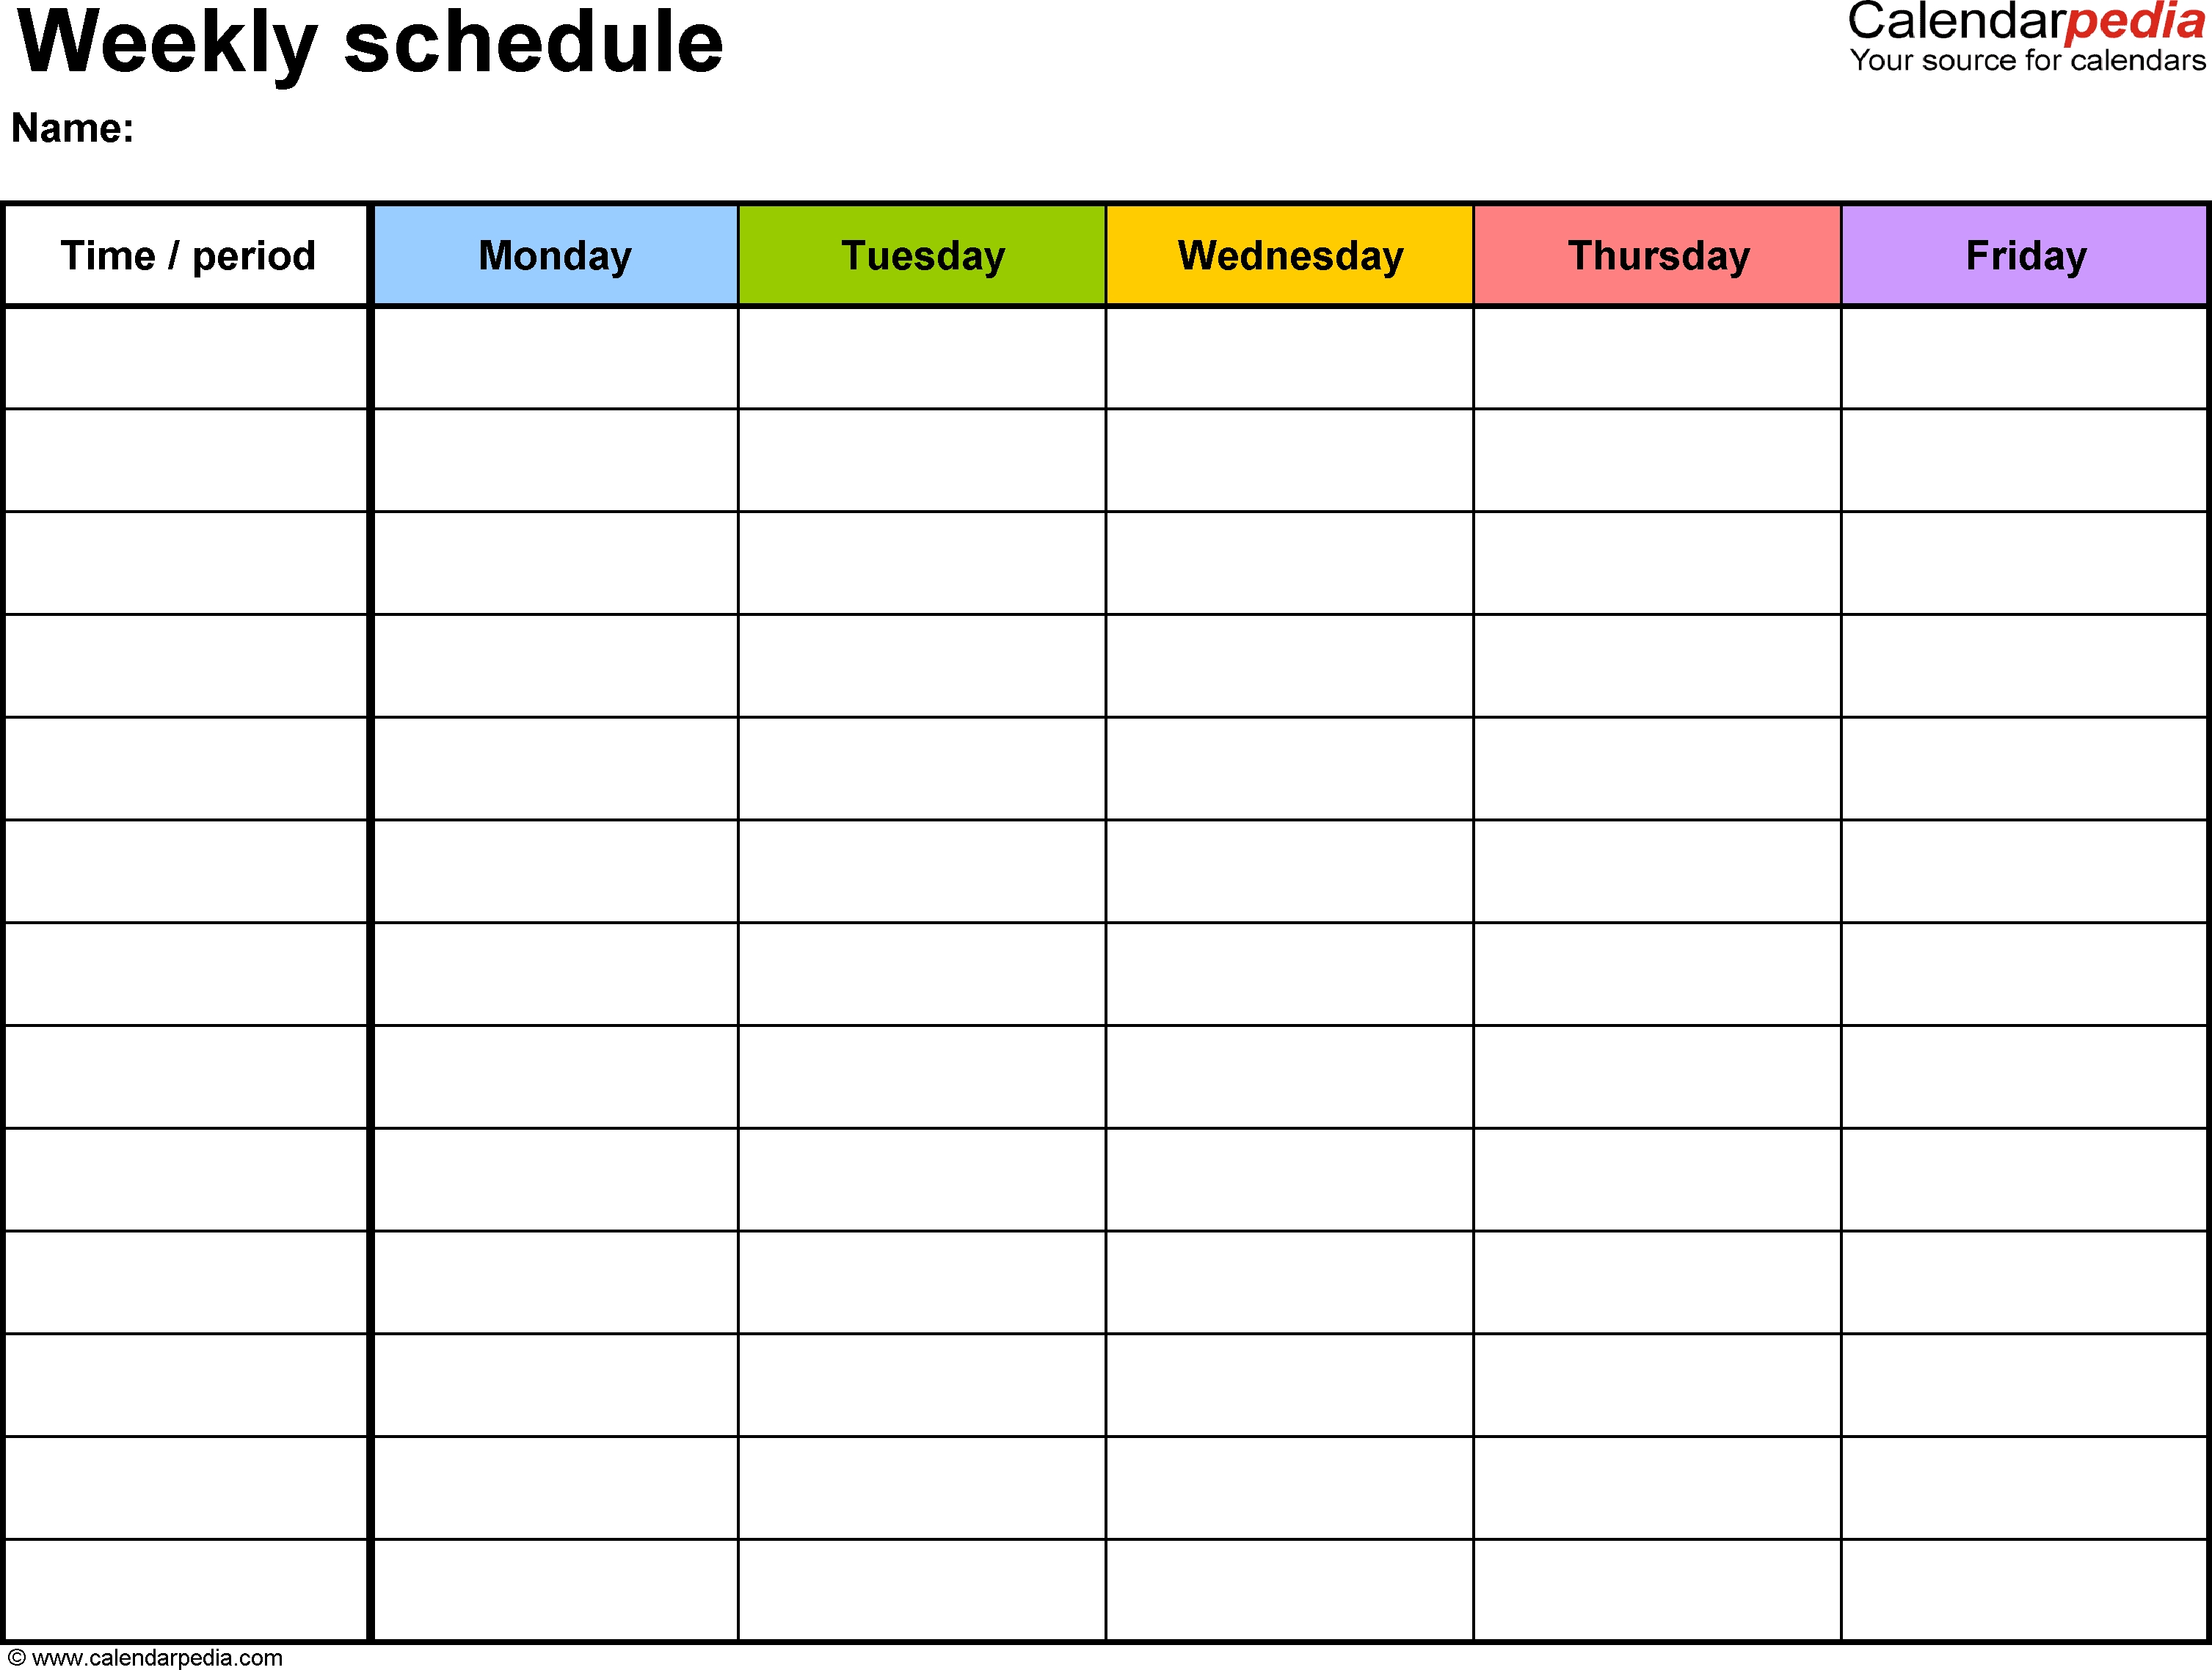 Free Weekly Schedule Templates For Word - 18 Templates-Monday To Friday Blank Calendar